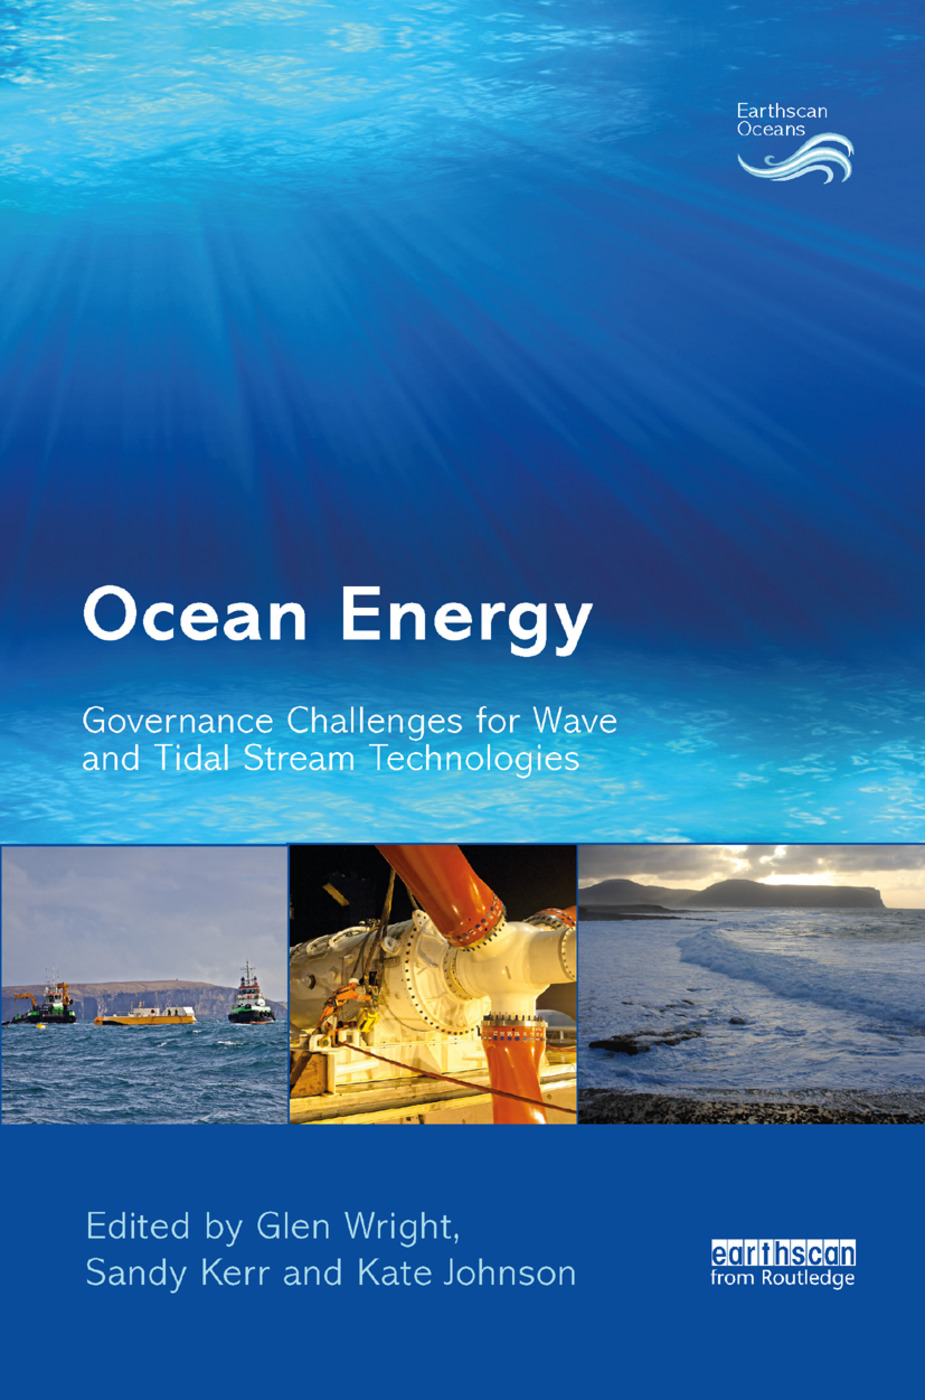 Ocean Energy: Governance Challenges for Wave and Tidal Stream Technologies book cover